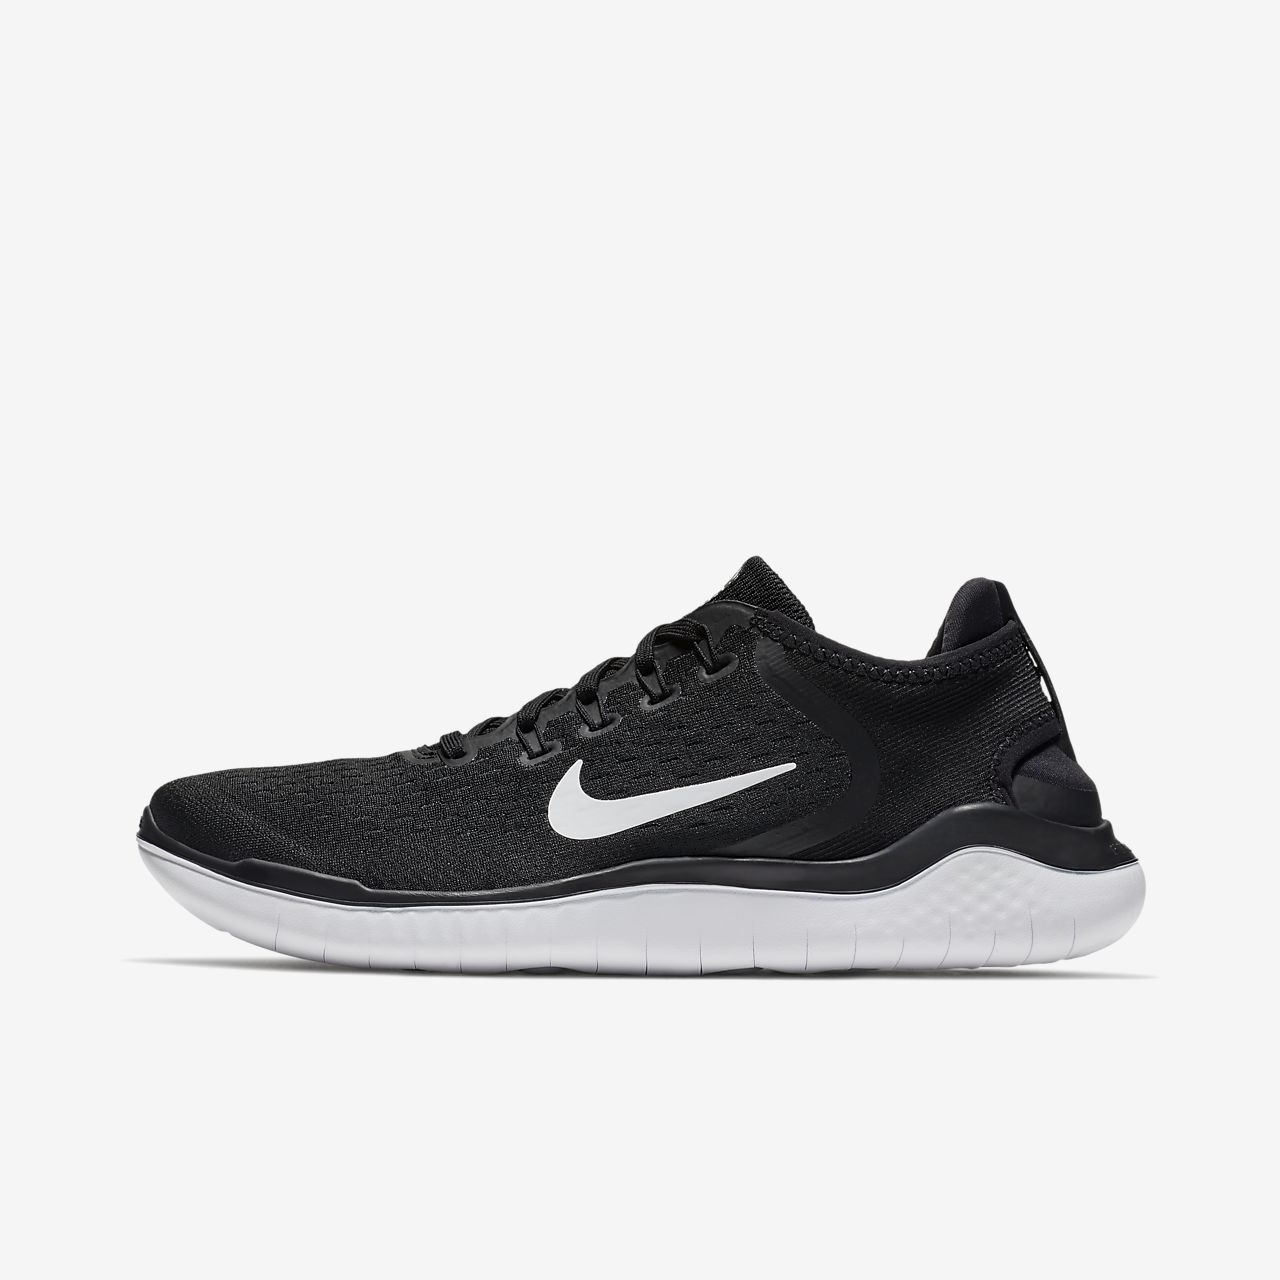 info for d170b c7a94 Men s Running Shoe. Nike Free RN 2018